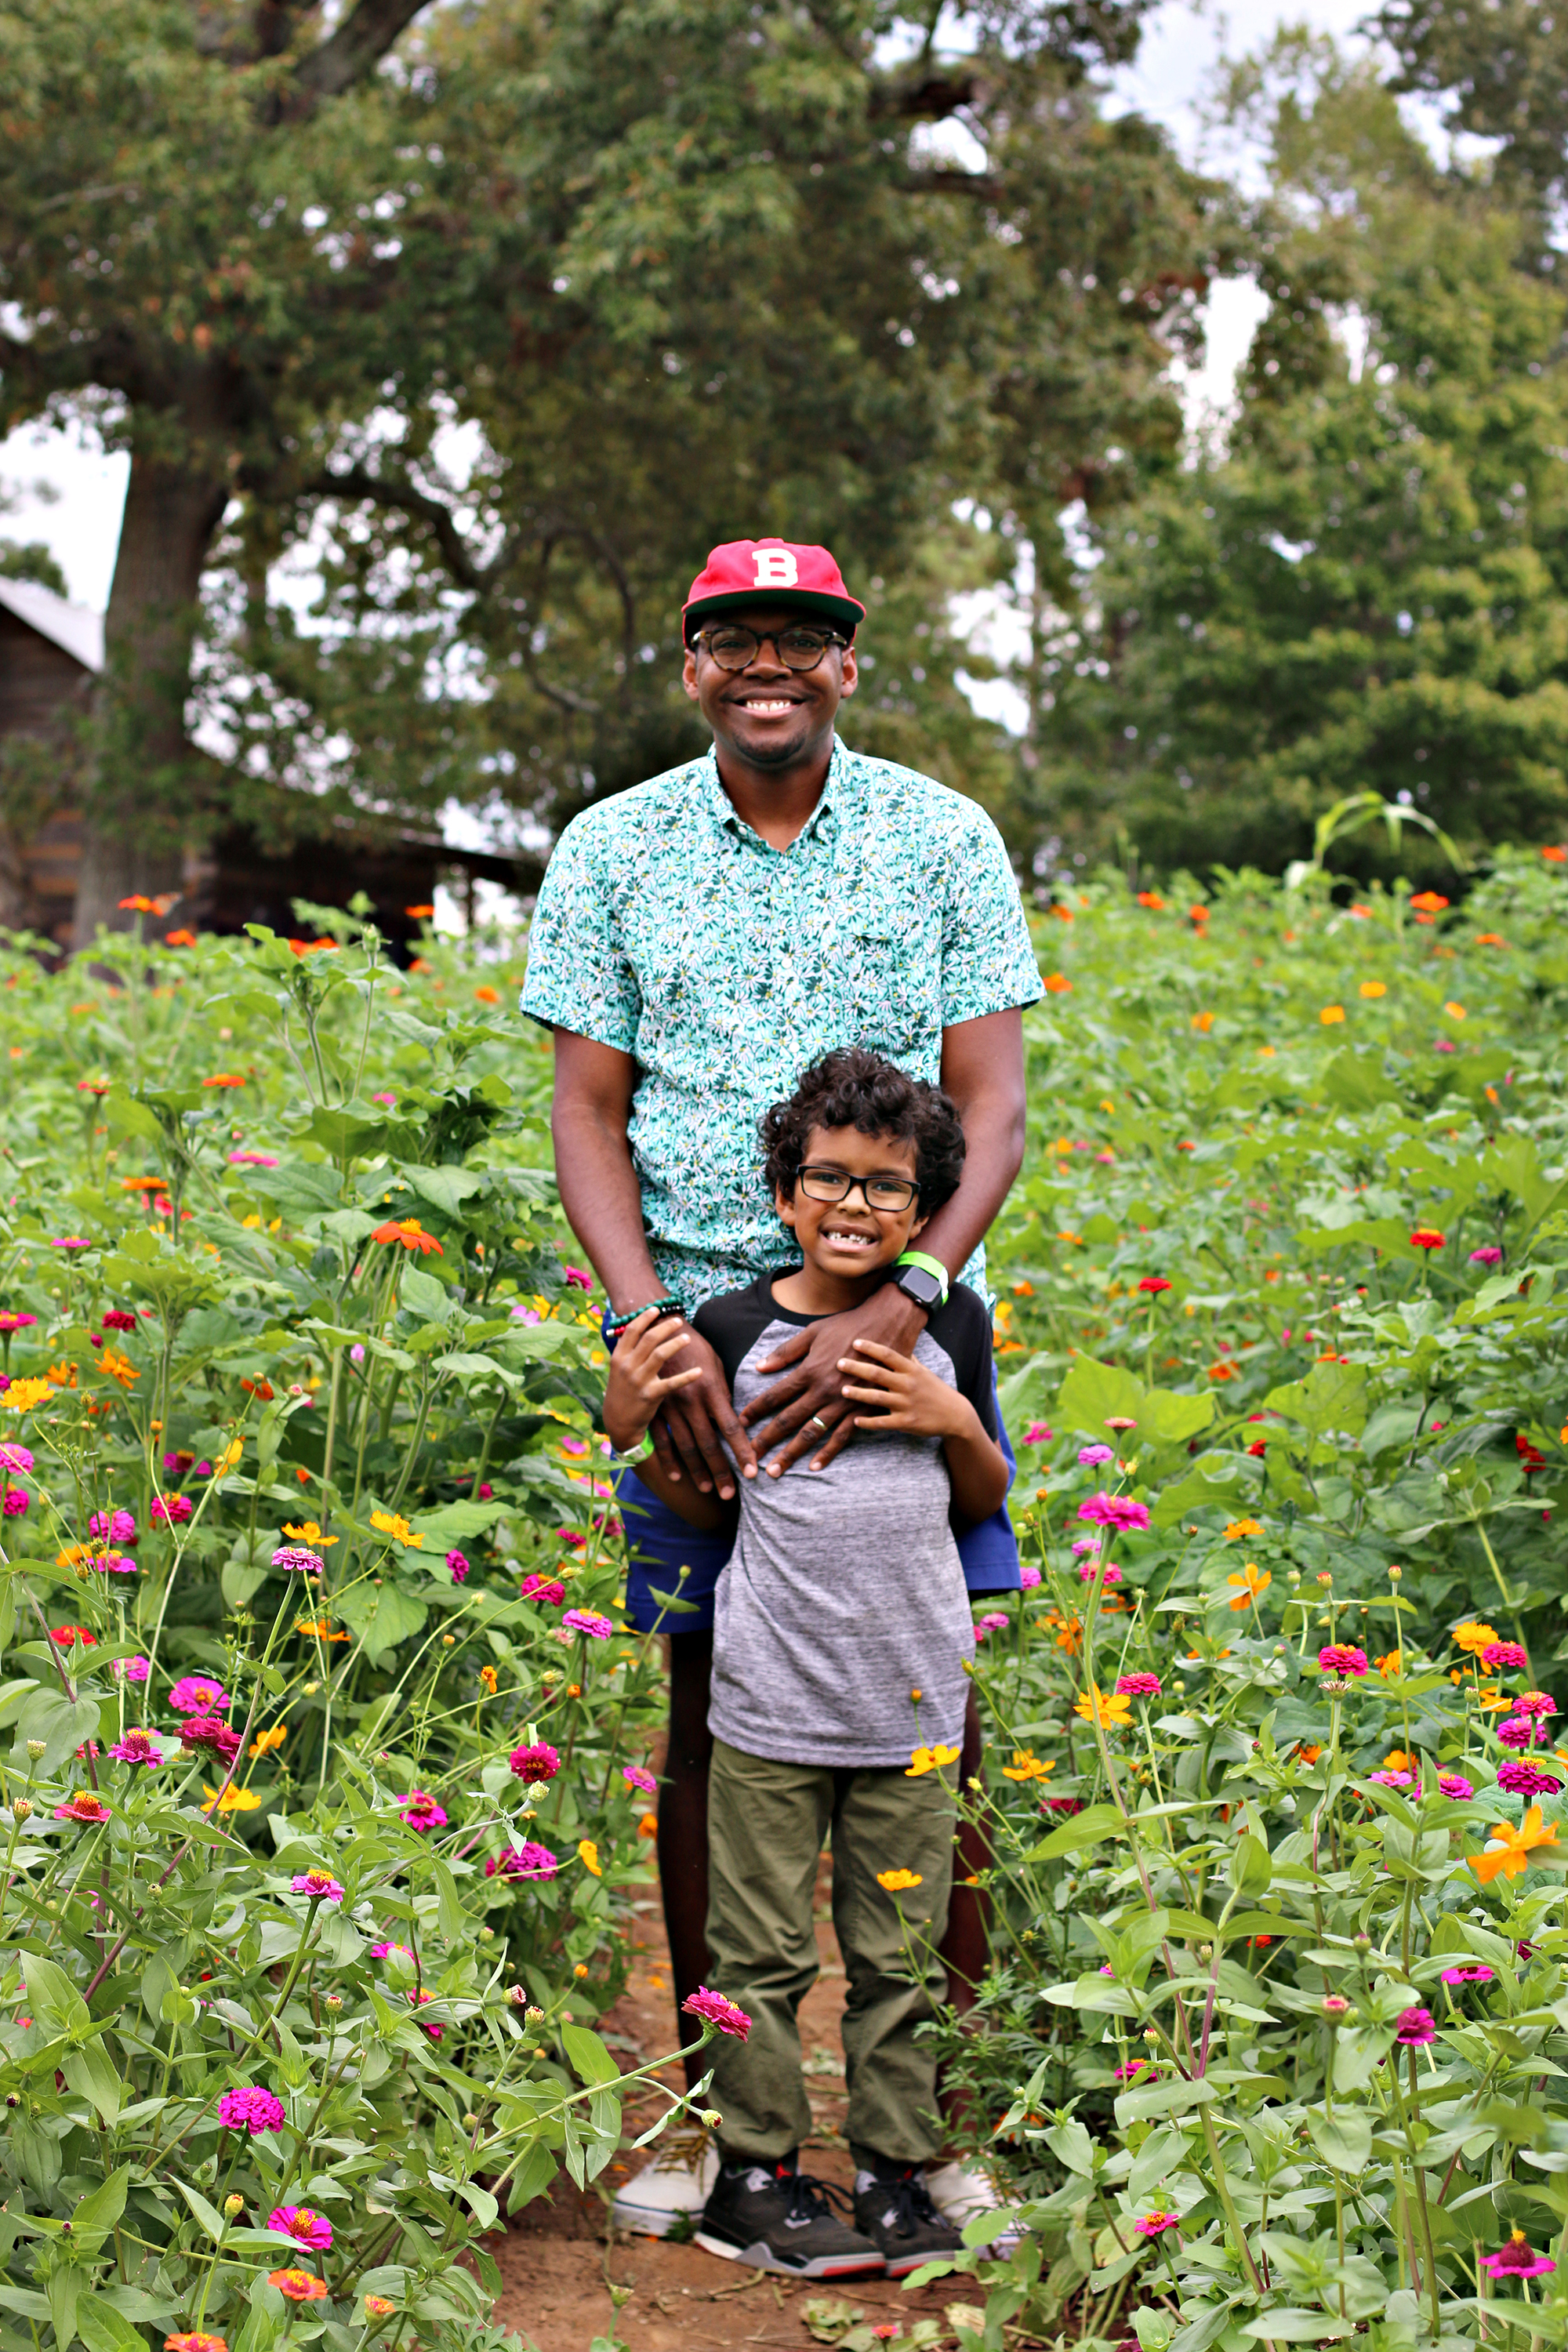 Dad and son smiling and posing in a flower garden at The Rock Ranch.